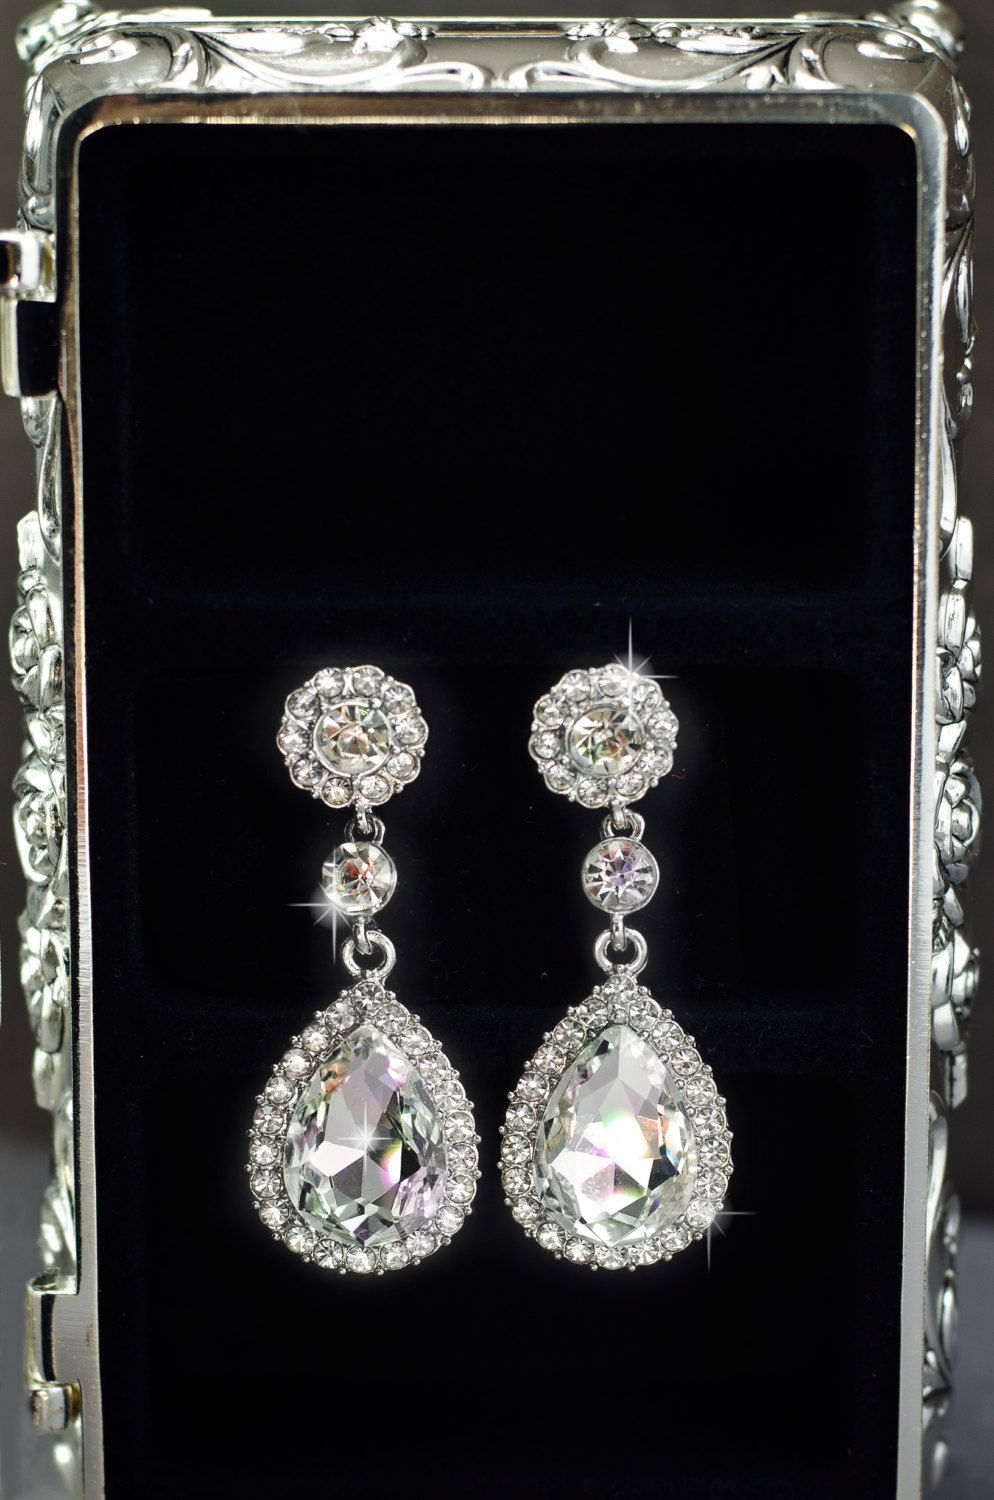 Crystal wedding earrings wedding jewelry teardrop bridal earrings crystal wedding earrings wedding jewelry teardrop bridal earrings vintage bridal earrings wedding arubaitofo Choice Image